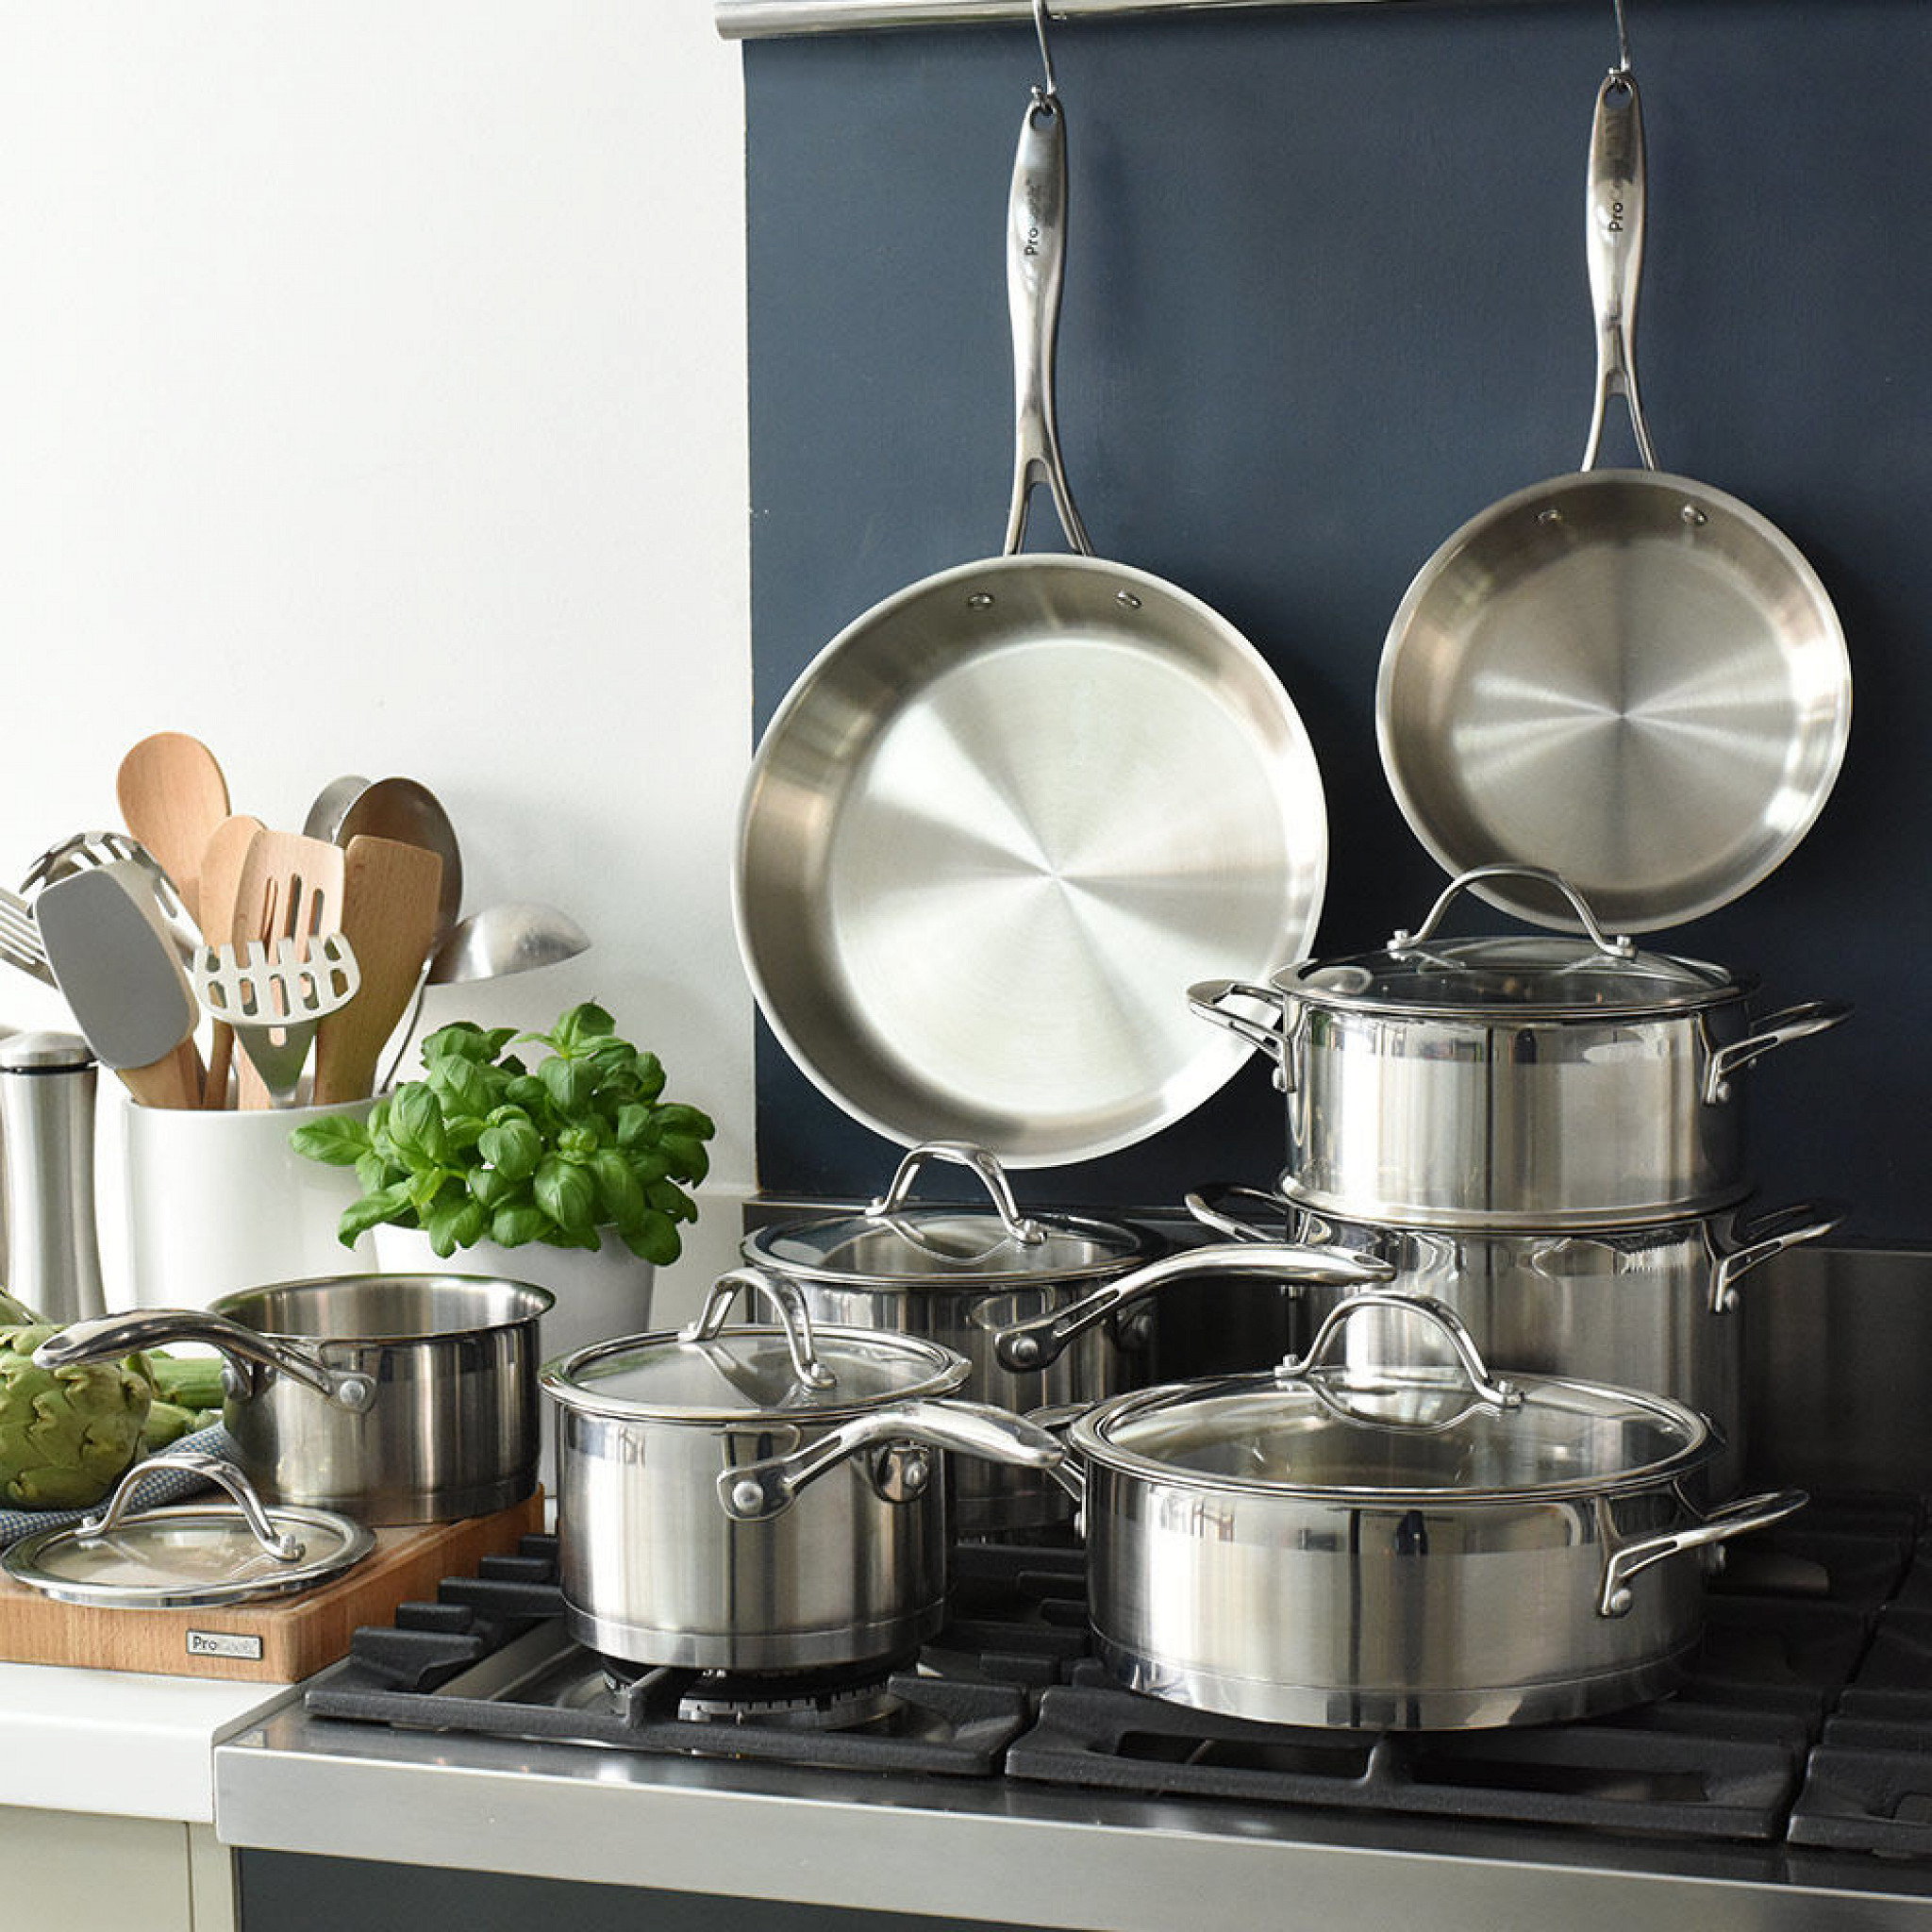 ProCook Stainless Steel Pots and Pans Displayed in Domestic Kitchen Setting, Small Size Image